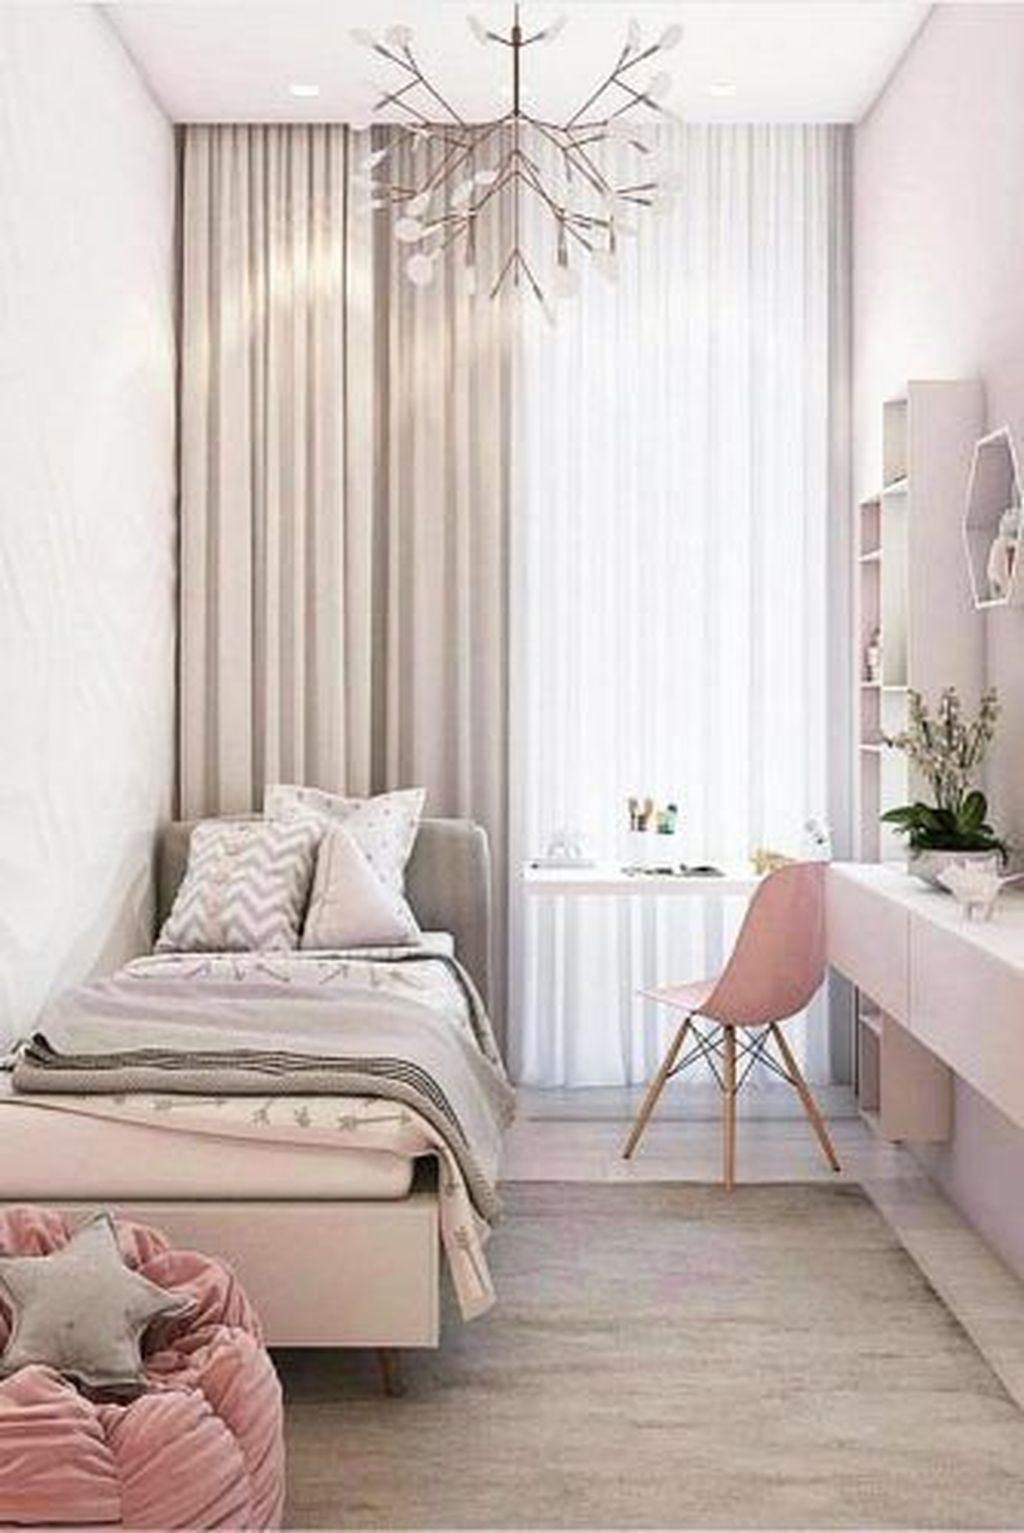 Awesome 57 Modern Small Bedroom Design Ideas For Home More At Https Homystyle Com 2018 10 16 57 Moder Small Apartment Bedrooms Stylish Bedroom Small Bedroom